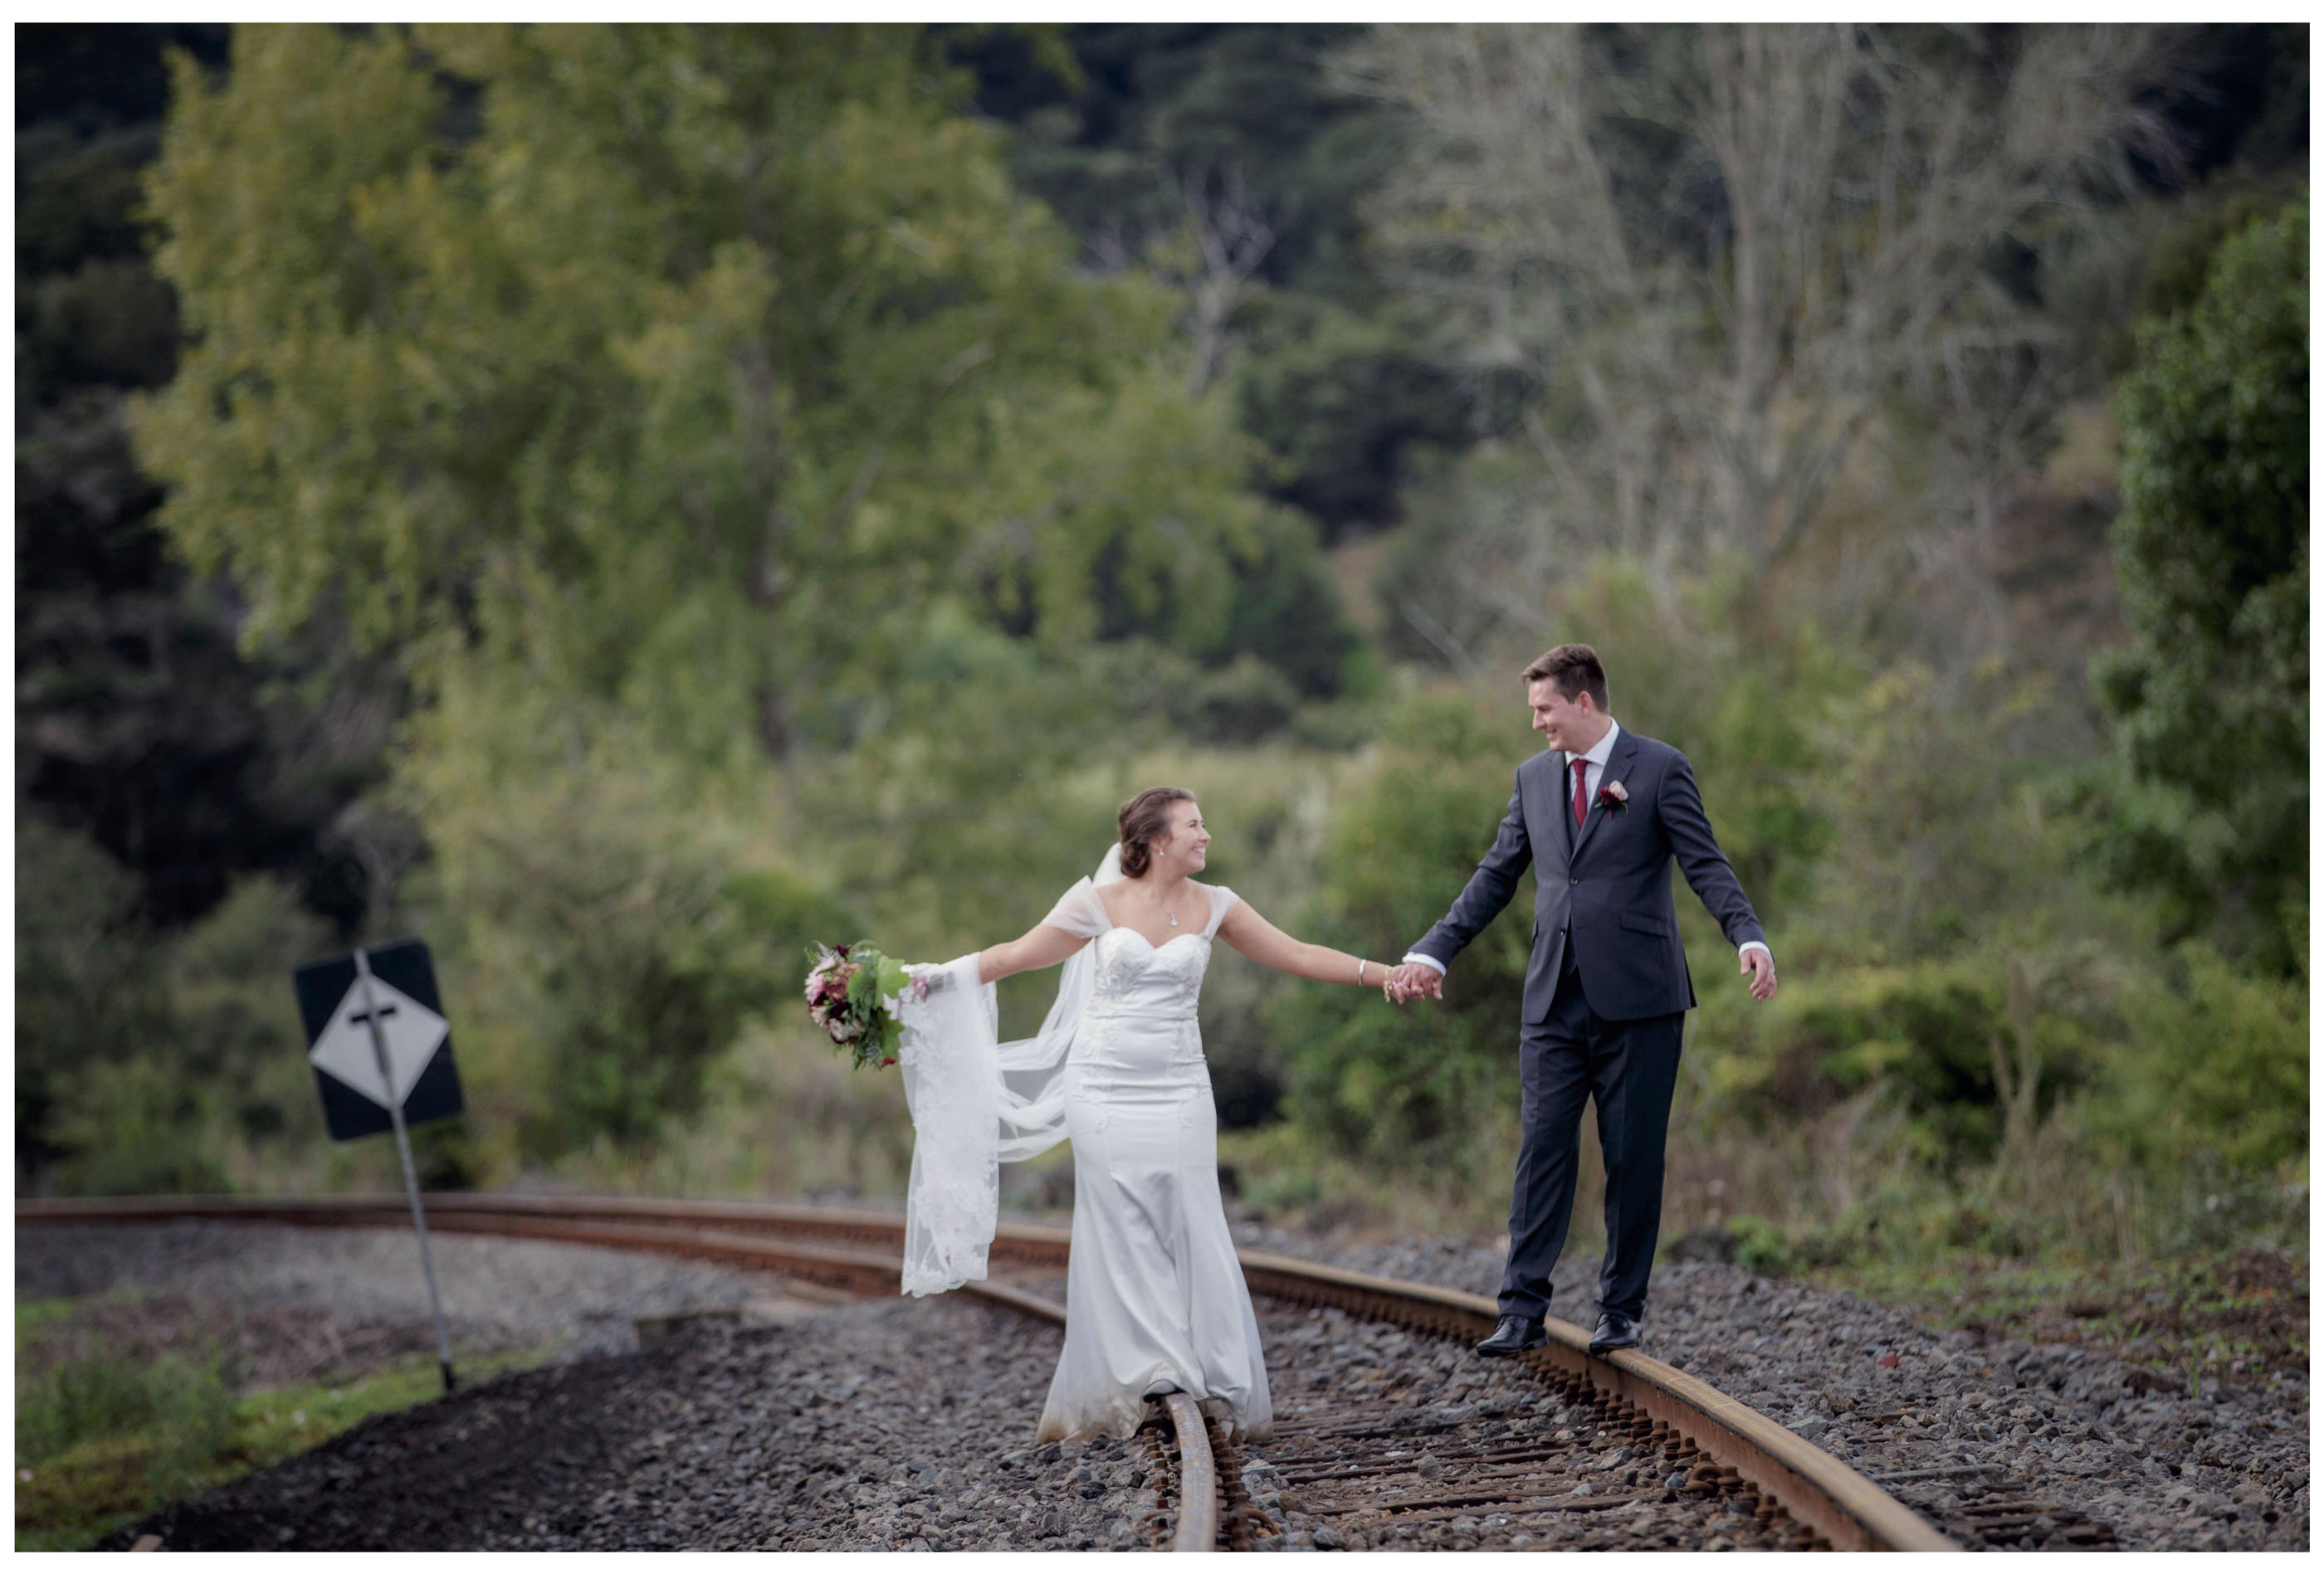 Bride and Groom creative wedding photo on Kumeu Railway line